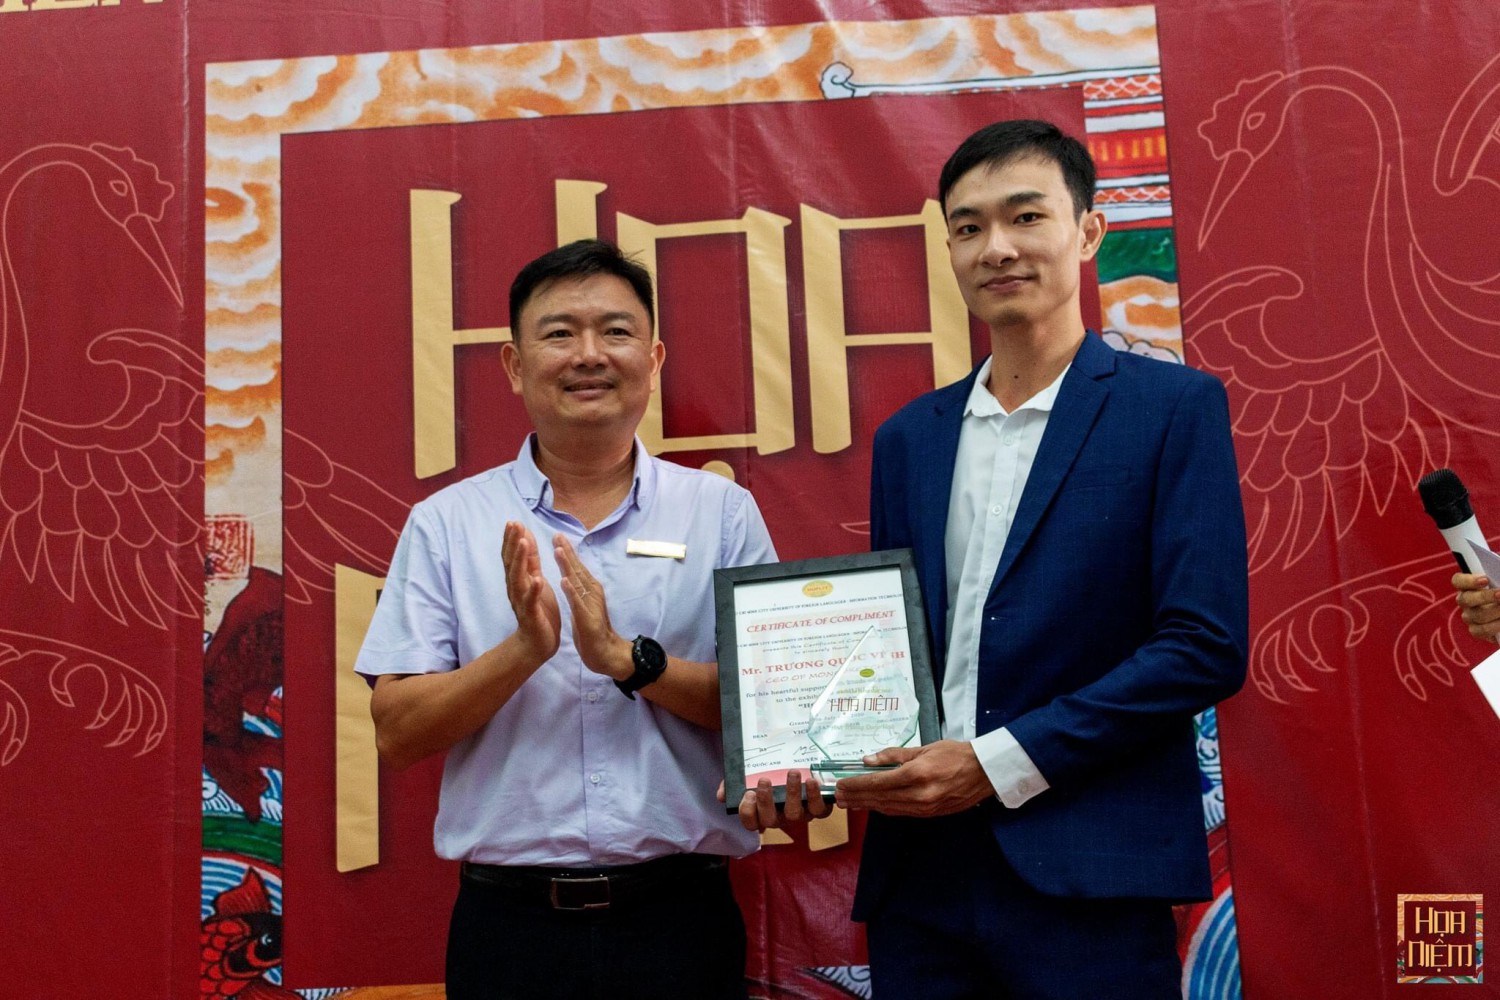 Dr Nguyễn Anh Tuấn Vice Chancellor presents crystal achievement award and certificate of compliment to Mr Trương Quốc Vinh Founder & CEO of Monosketch